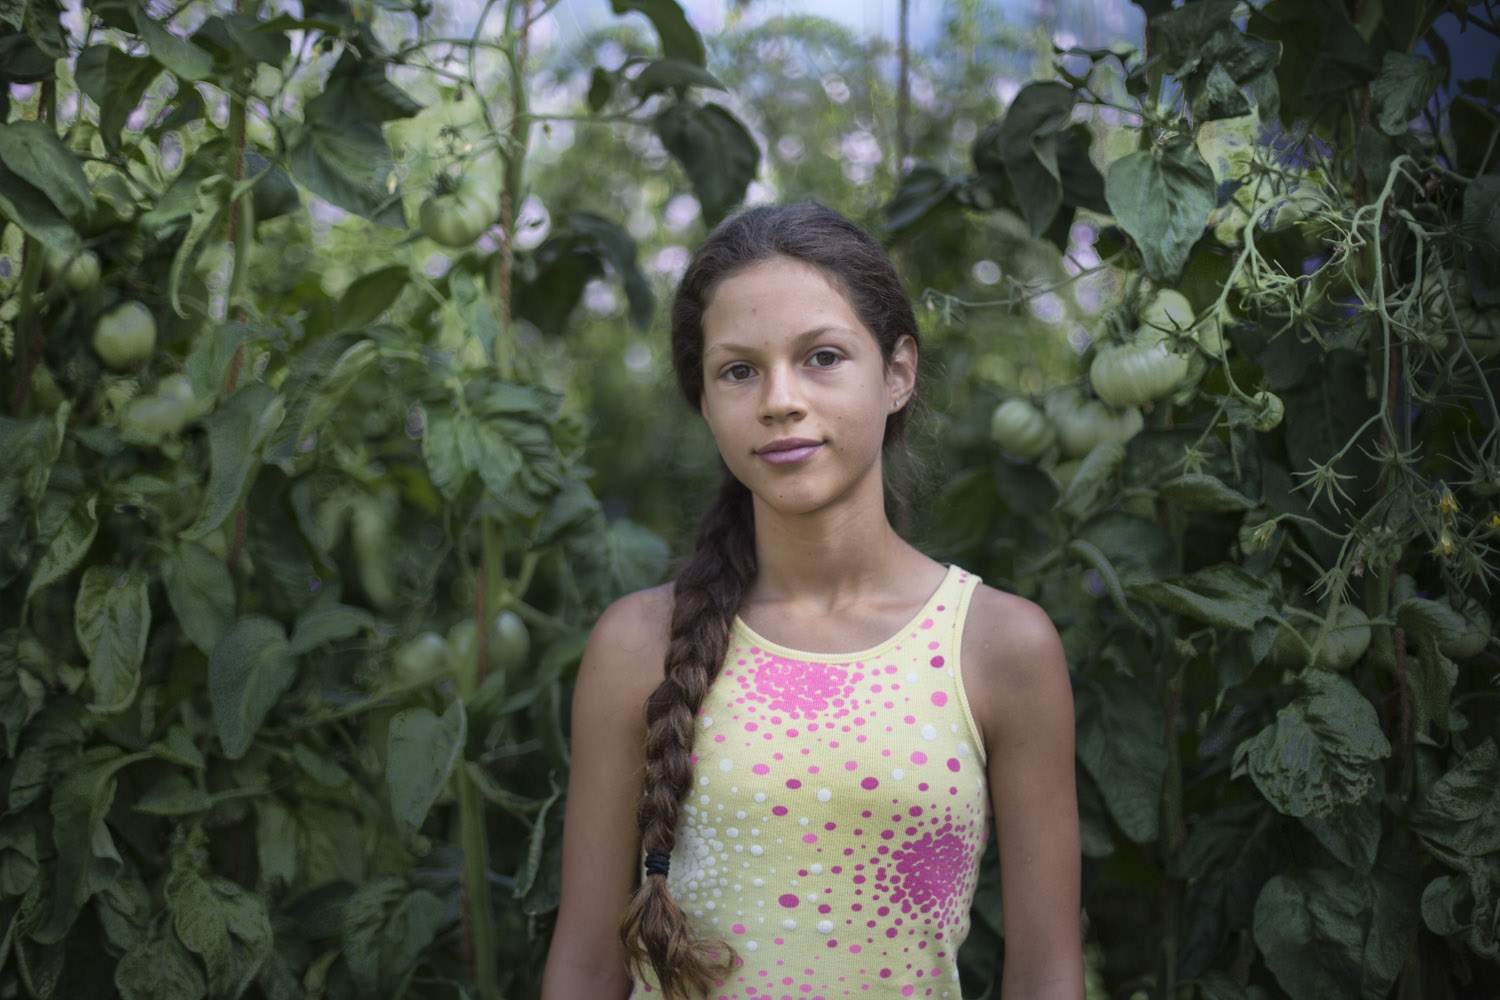 Farmers daughter, Nyanza, in the greenhouse after harvesting tomatoes. (British Columbia)